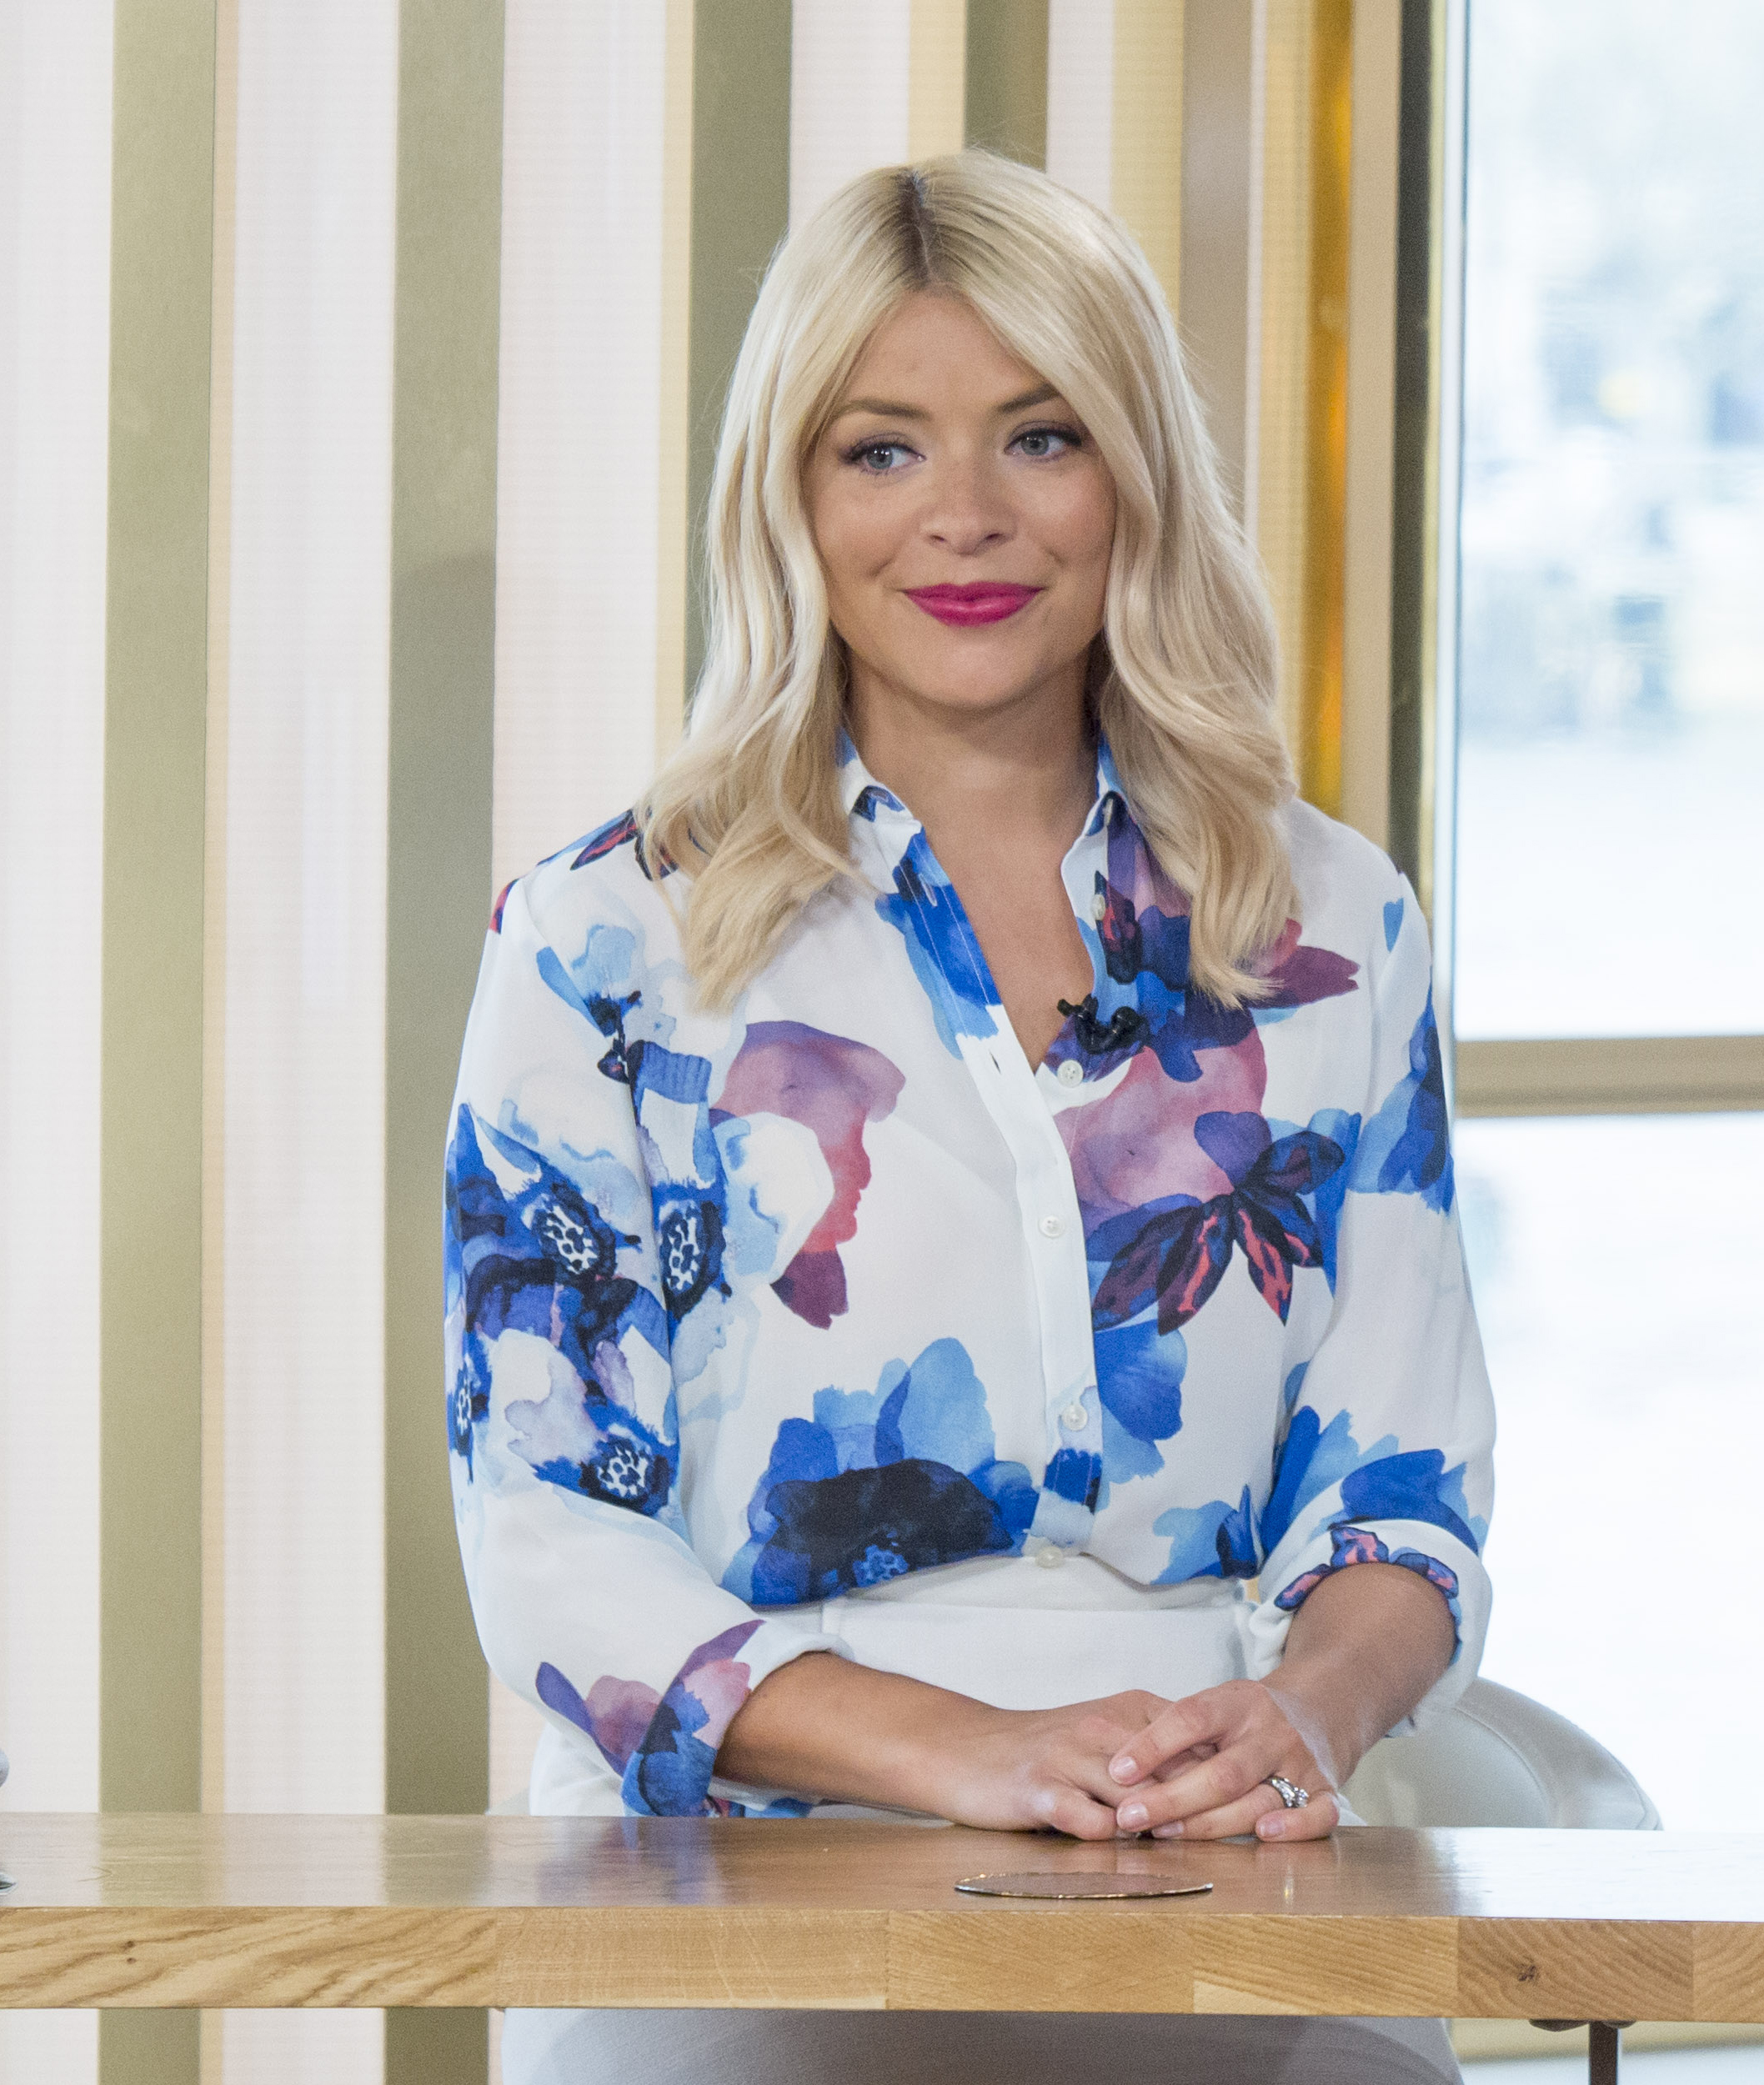 This Morning host Holly Willoughby in pictures